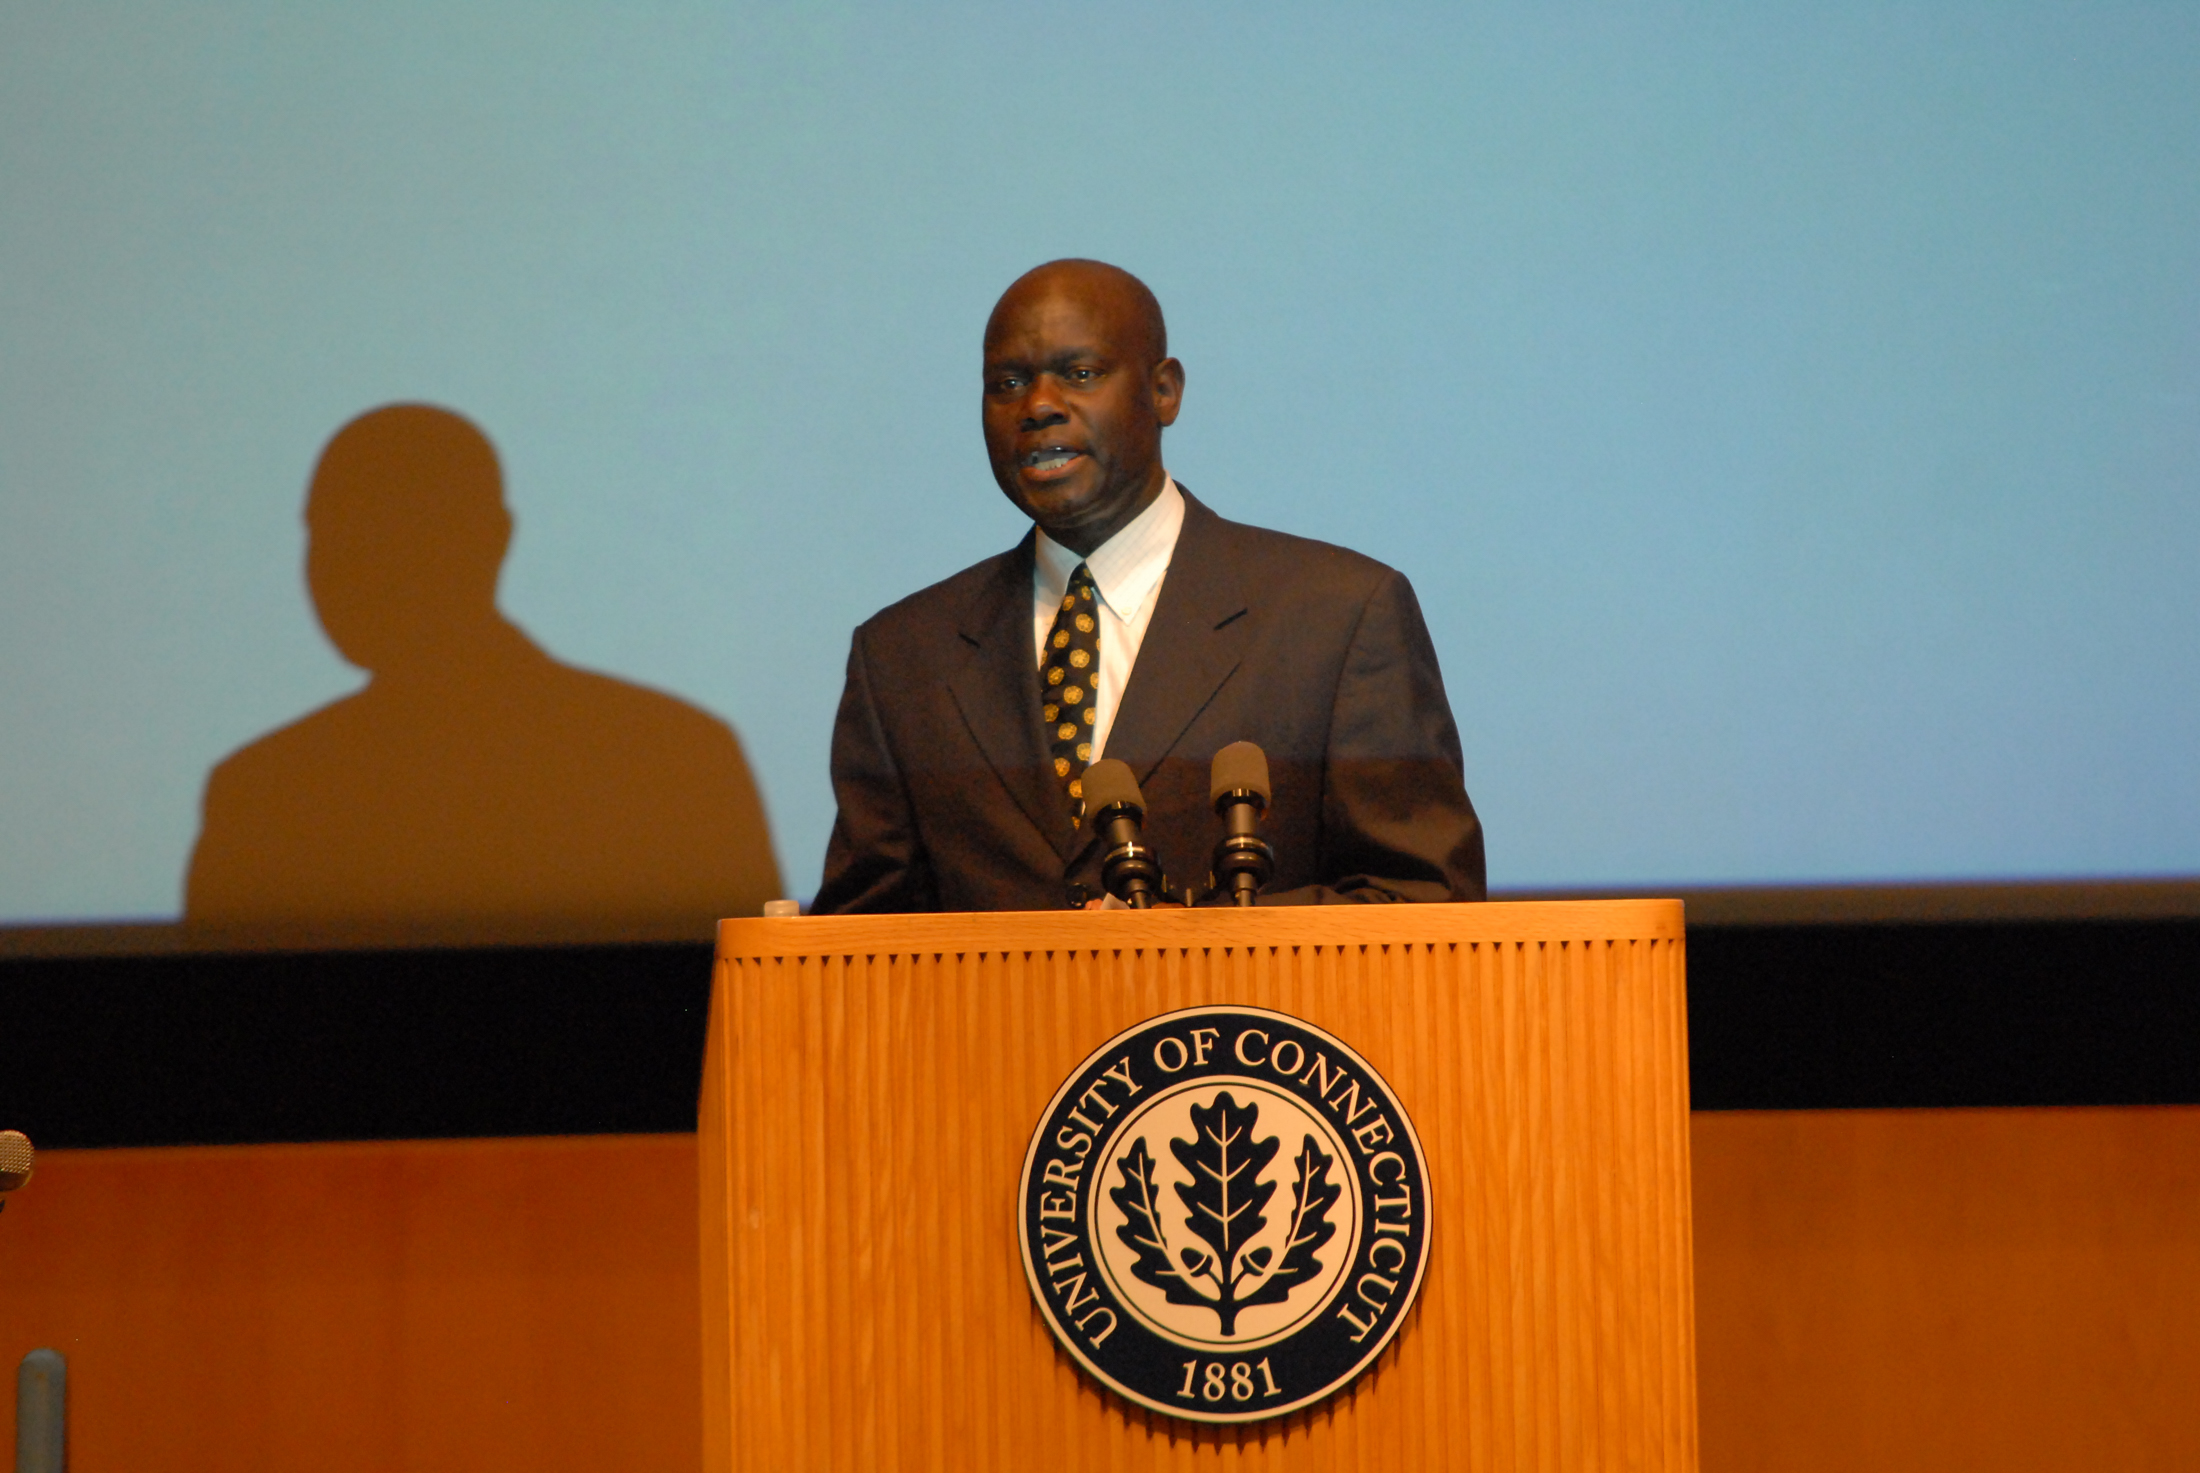 Dr. Amii Omara-Otunnu presents an award top a colleague on Sept. 11, 2012. He has recently been removed from his post as the UNESCO chair at UConn. (File Photo/The Daily Campus)